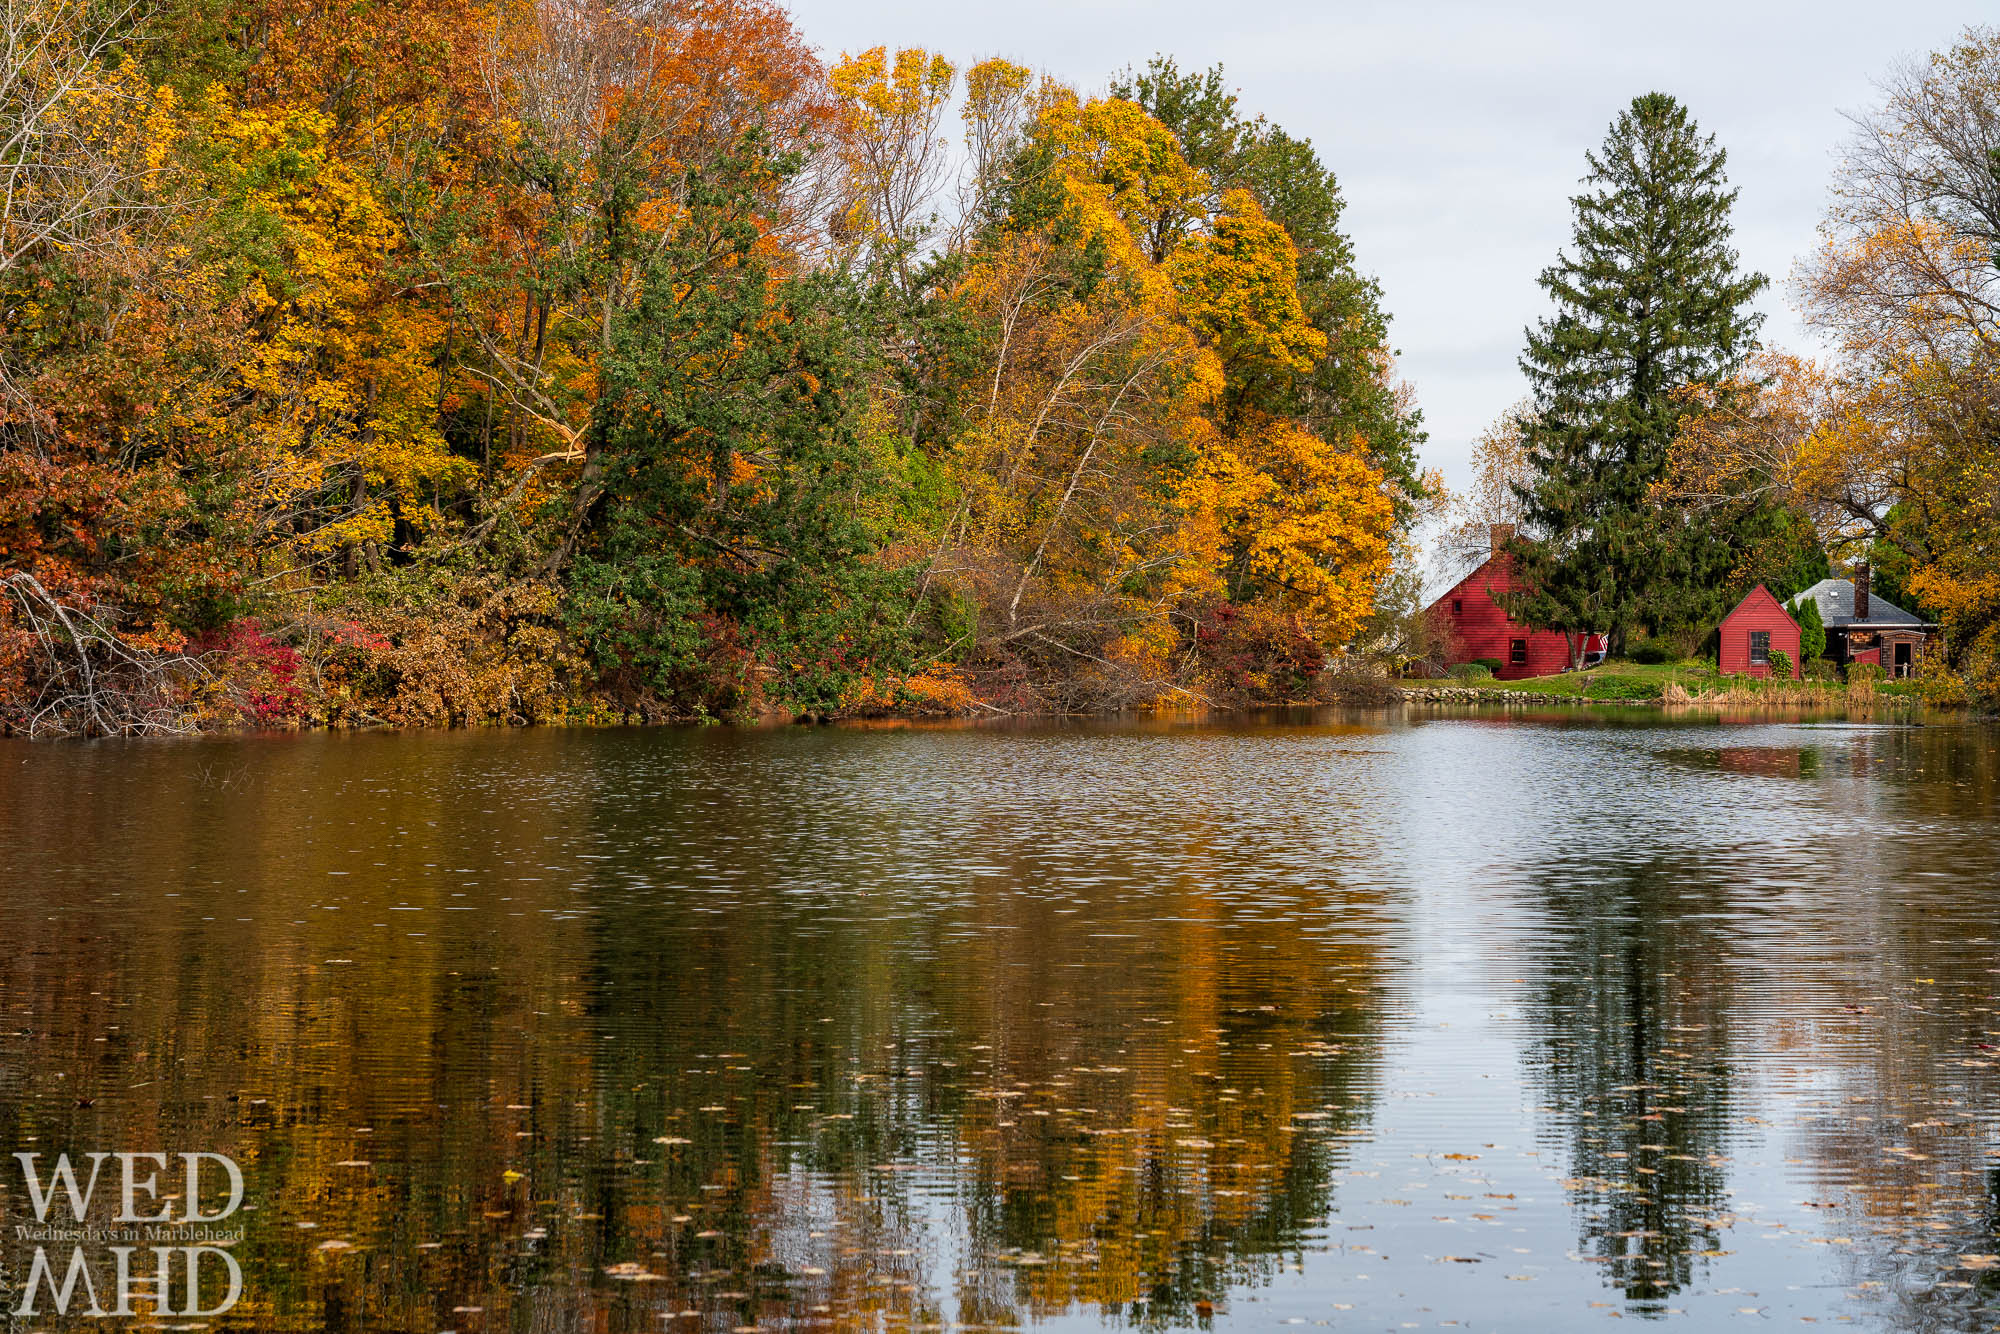 Fall foliage reflects in the still waters of Black Joes pond on a late October day